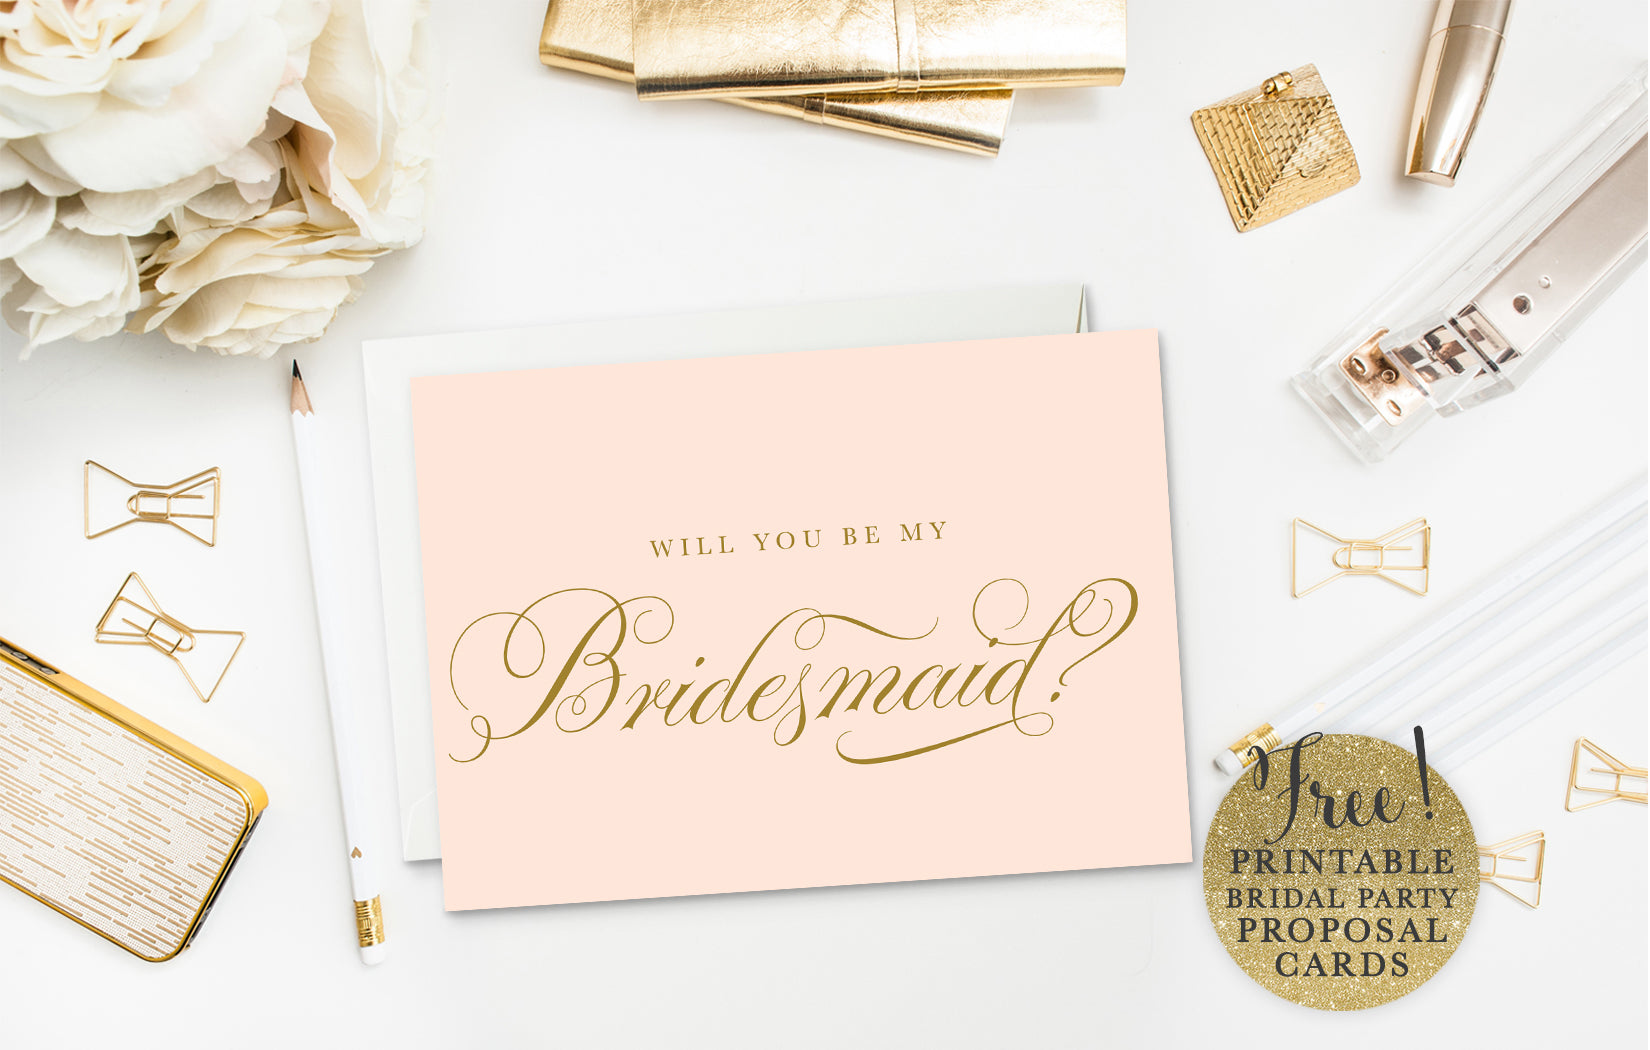 It's just a picture of Canny Free Printable Bridesmaid Proposal